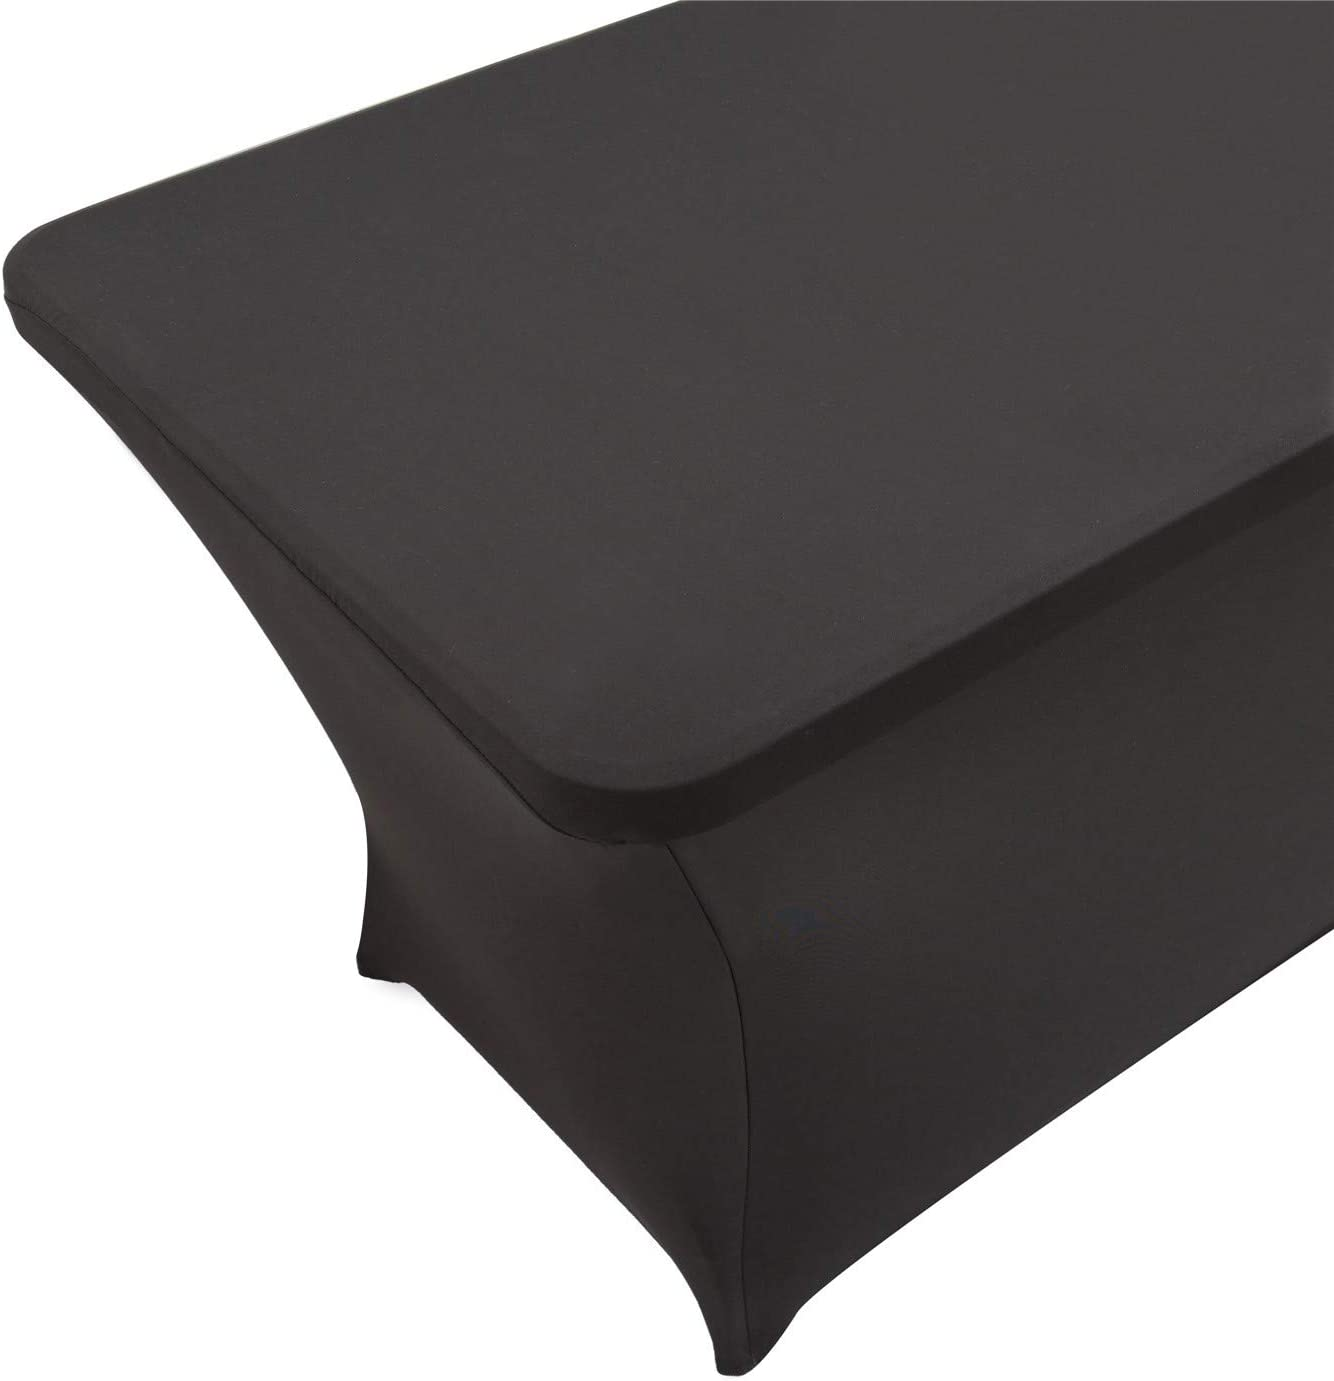 2 Pack 4ft Rectangle Black Cocktail Tablecloth with Stretch Spandex Fitted Table Cover for Bar Wedding Cocktail Massage Kitchen Table